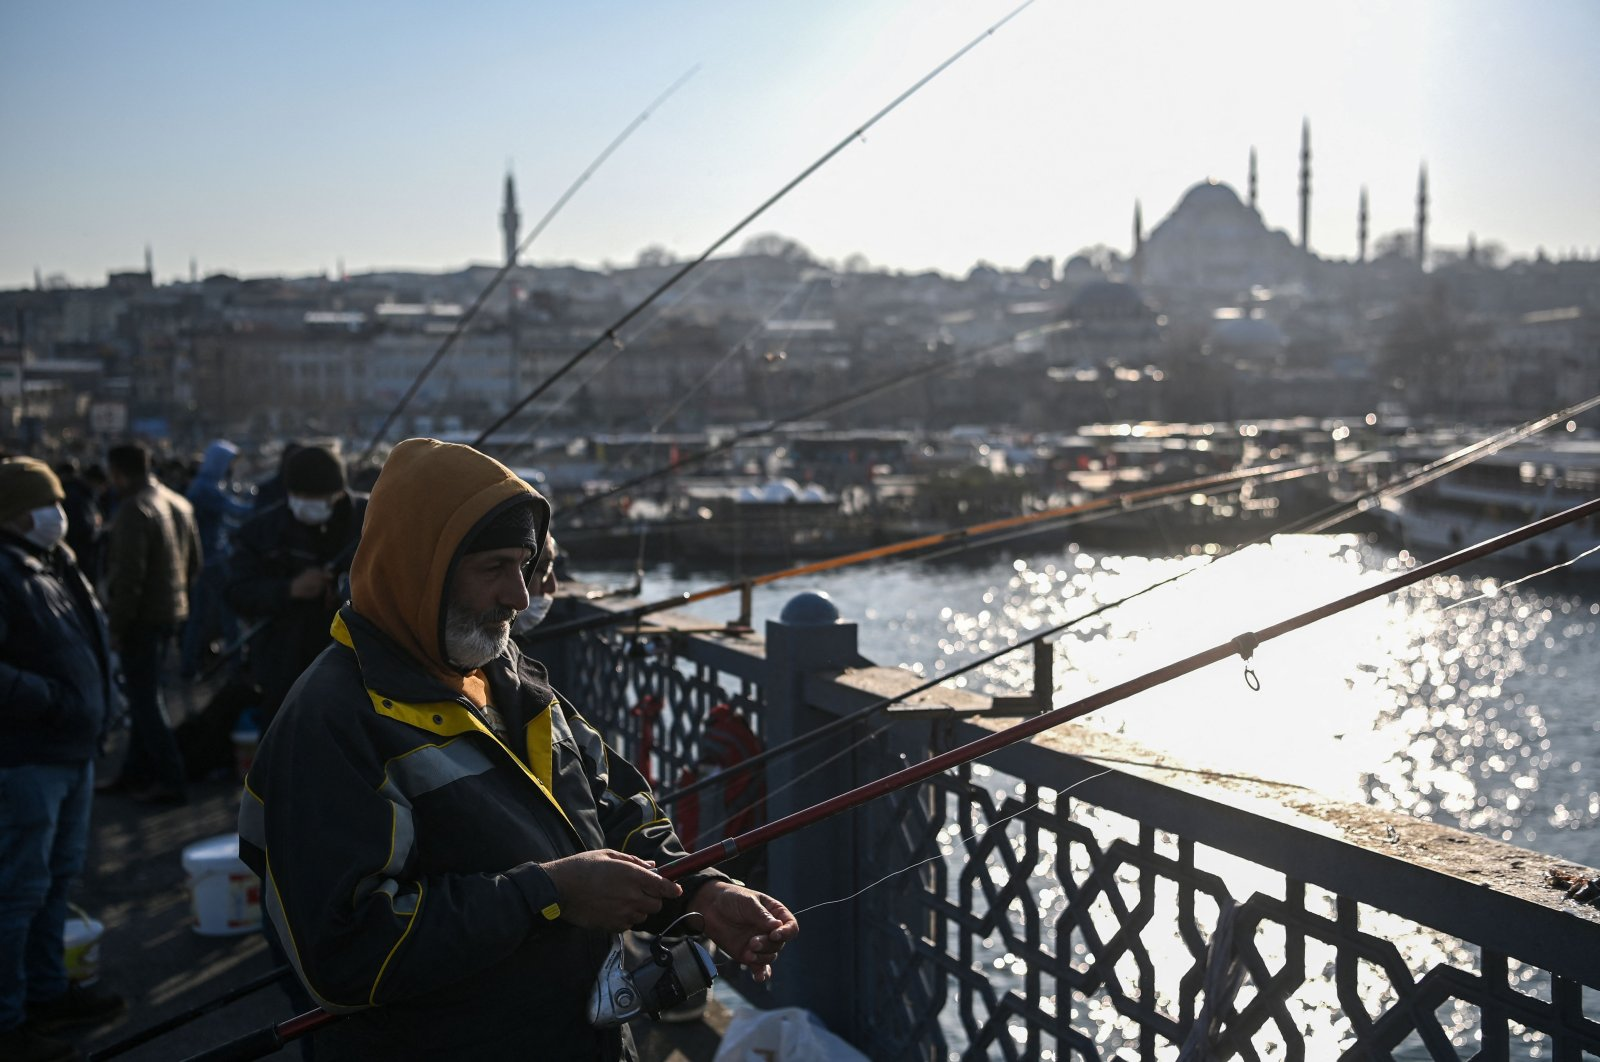 Men fish on the Galata Bridge with the Süleymaniye mosque in the background, in Istanbul's historic Eminönü district on March 9, 2021. (AFP Photo)